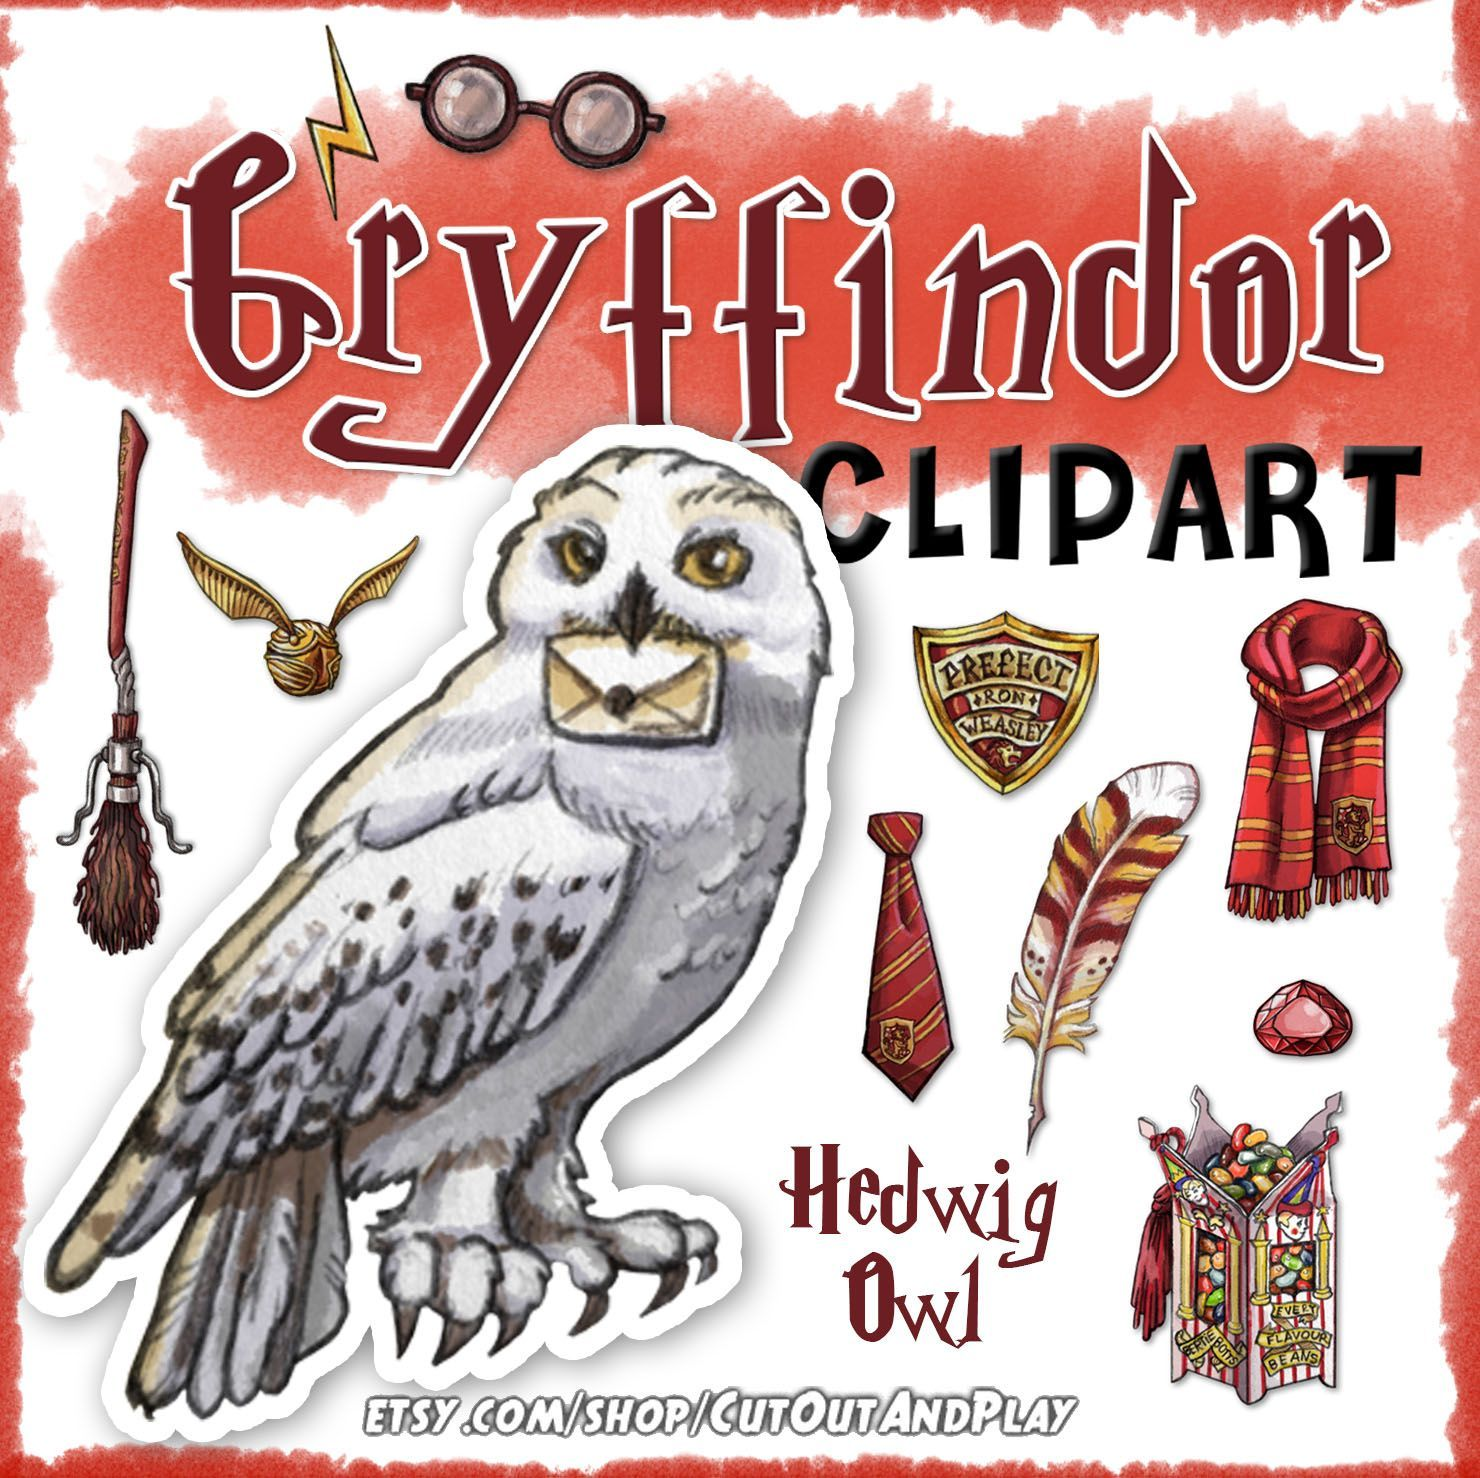 Gryffindor clipart, Harry Potter clipart, Harry potter party.